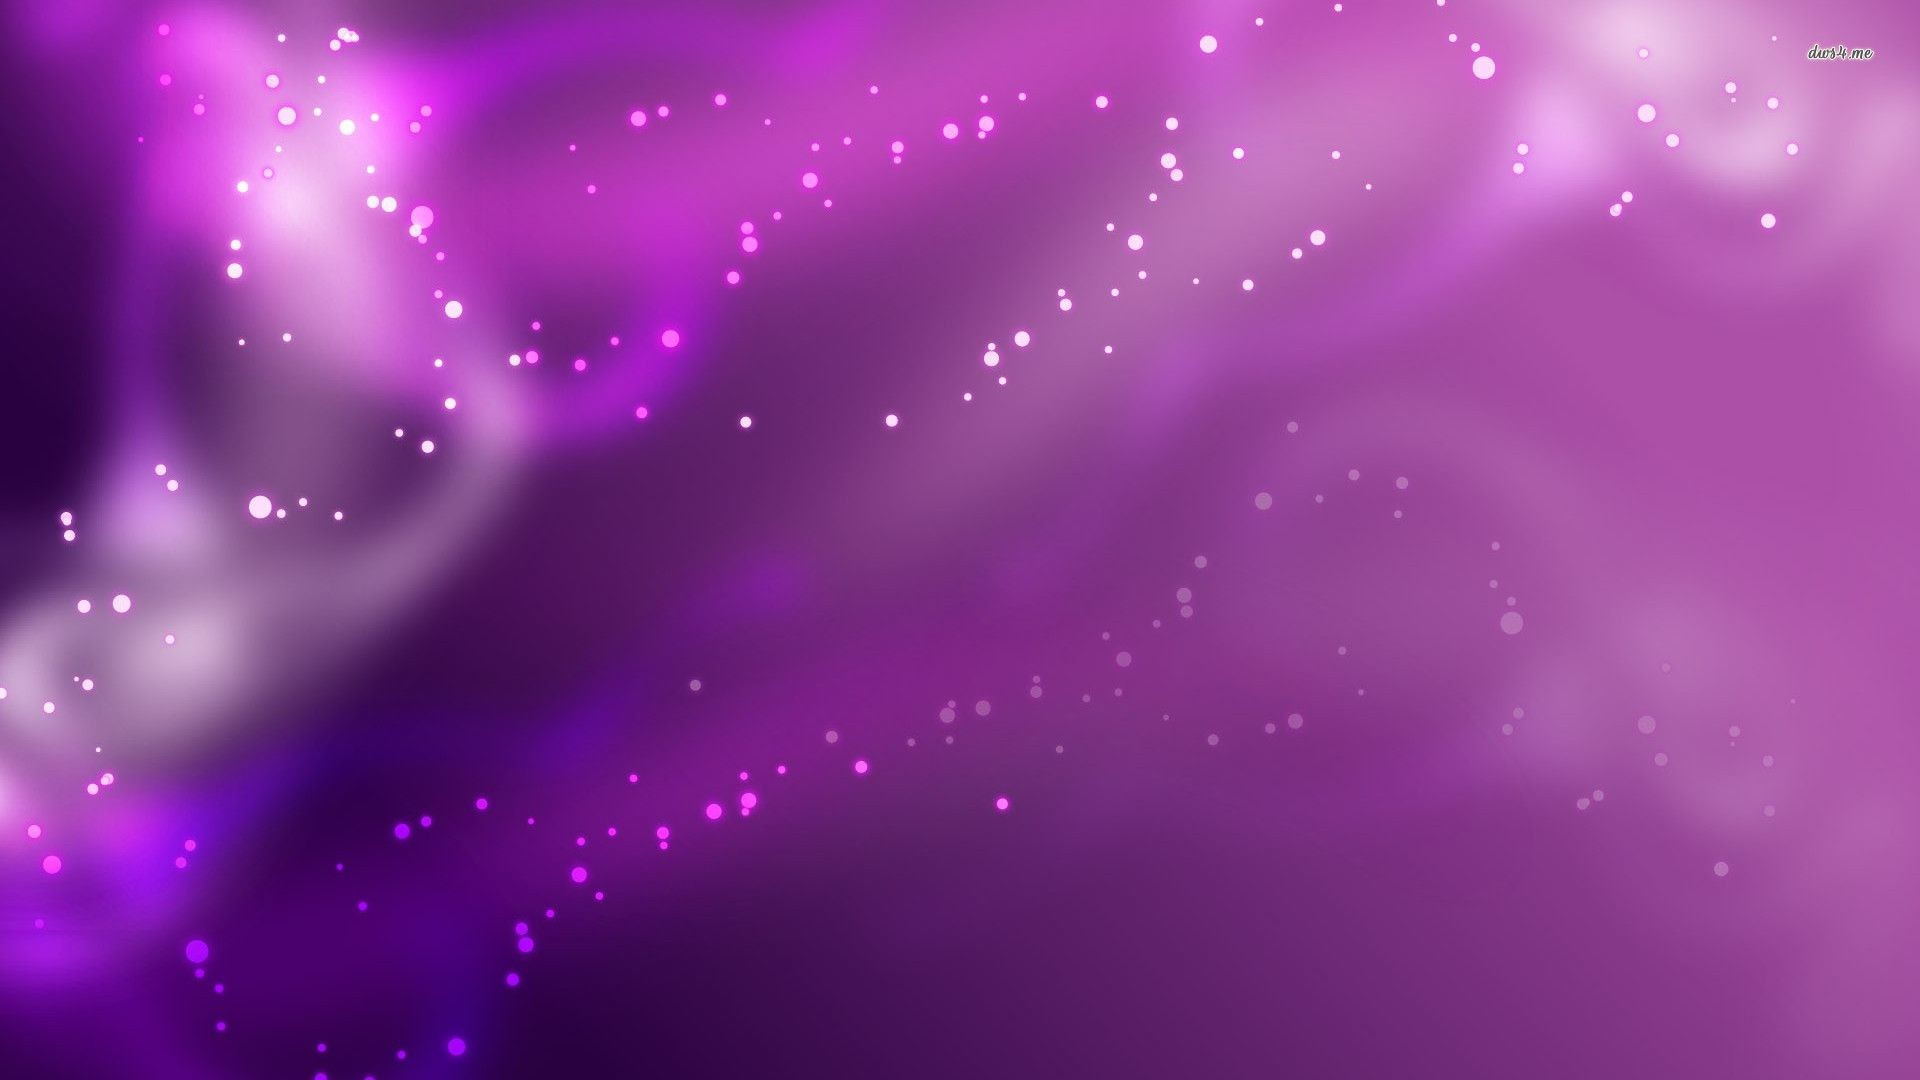 Light Purple Abstract Wallpaper Background 1 HD Wallpapers | aduphoto.